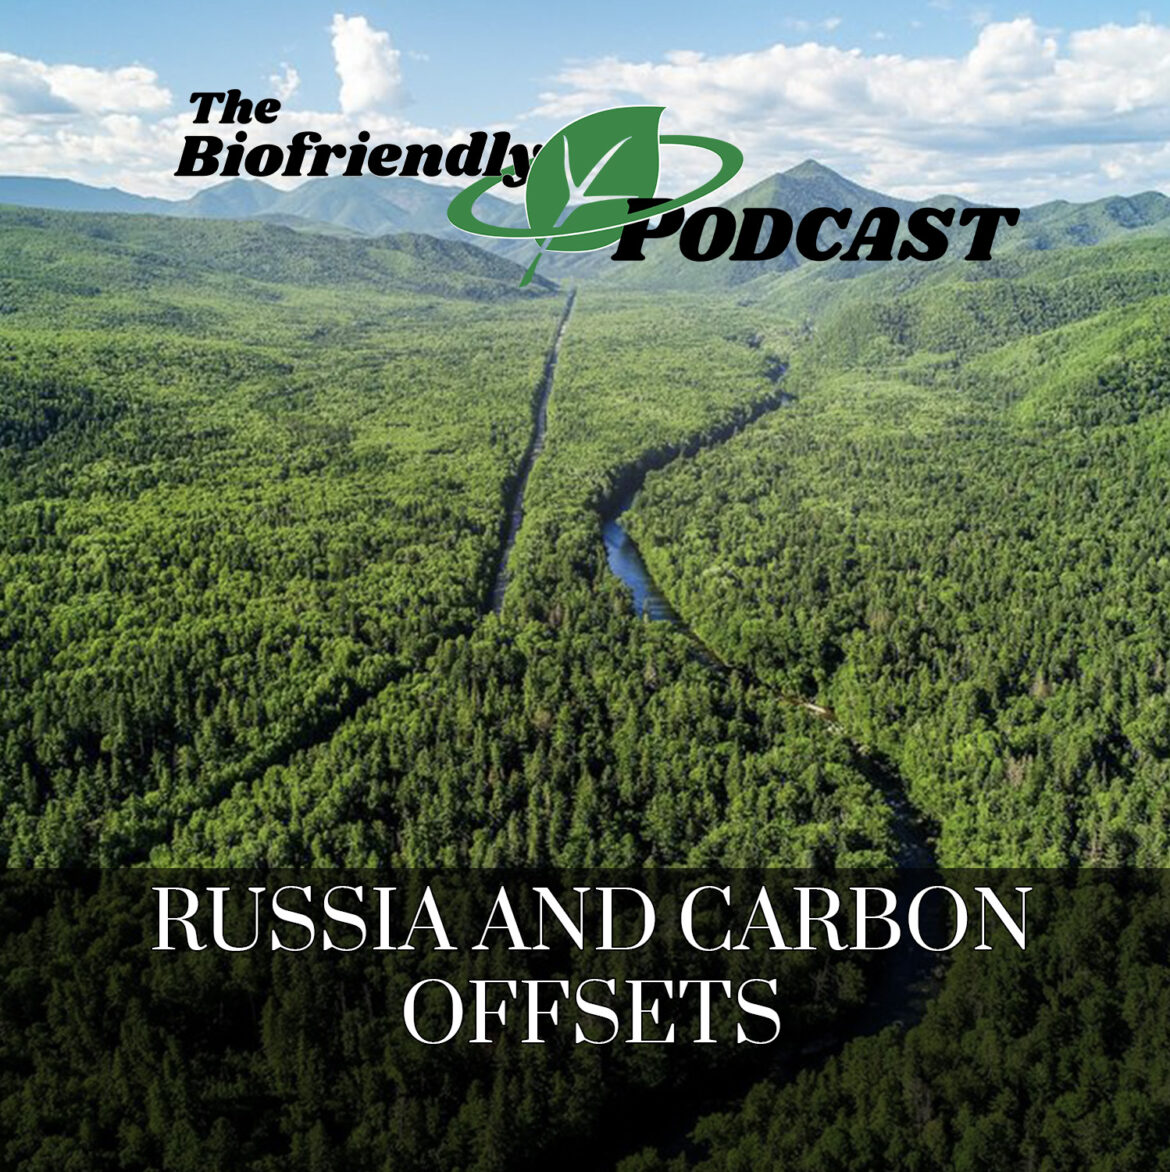 Russia and Carbon Offsets